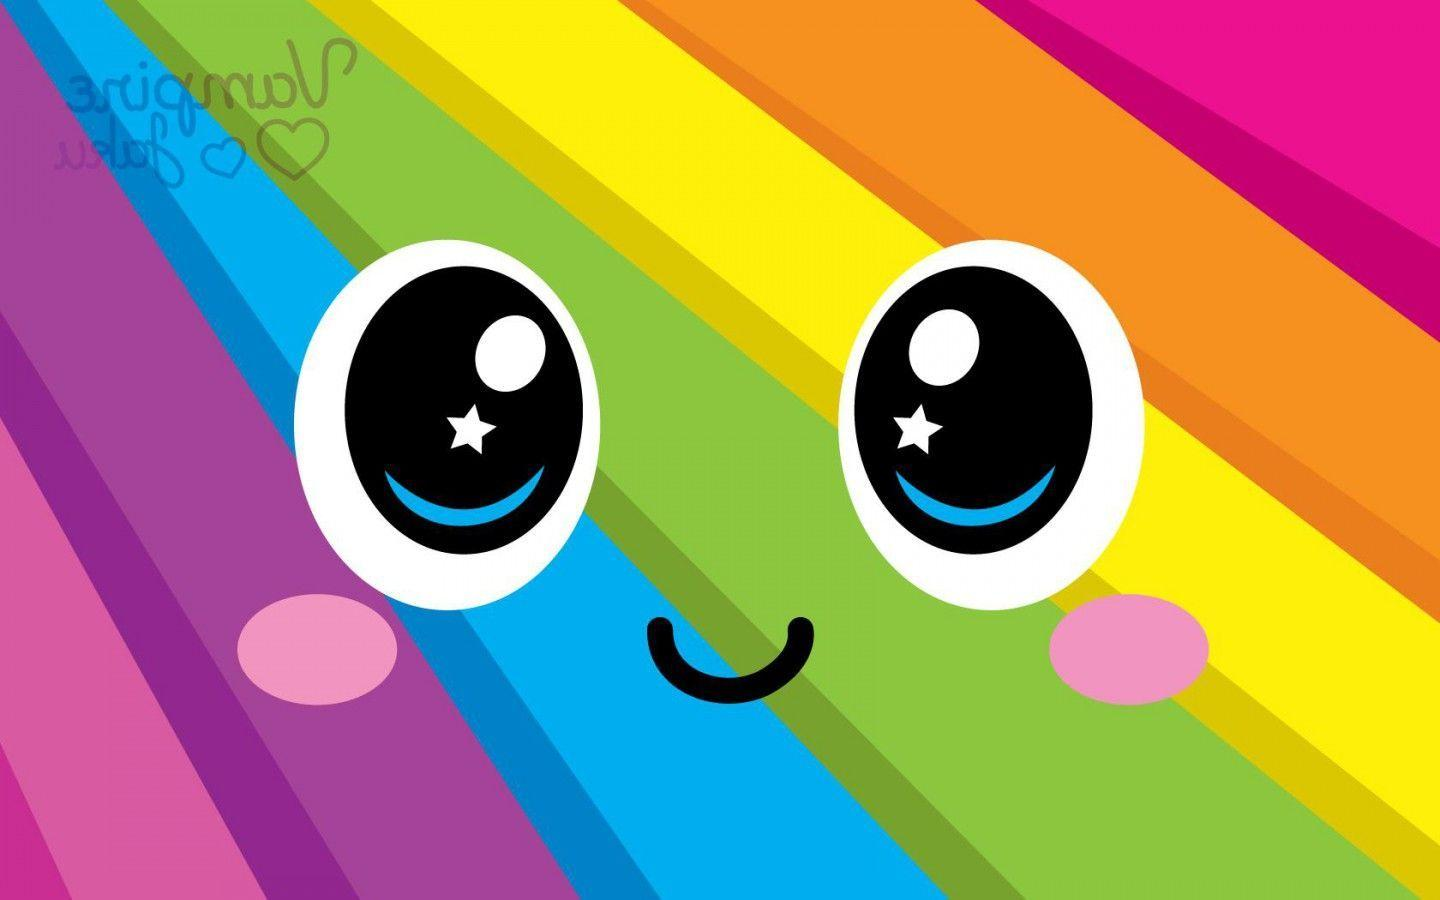 Happy Faces Wallpapers - Wallpaper Cave